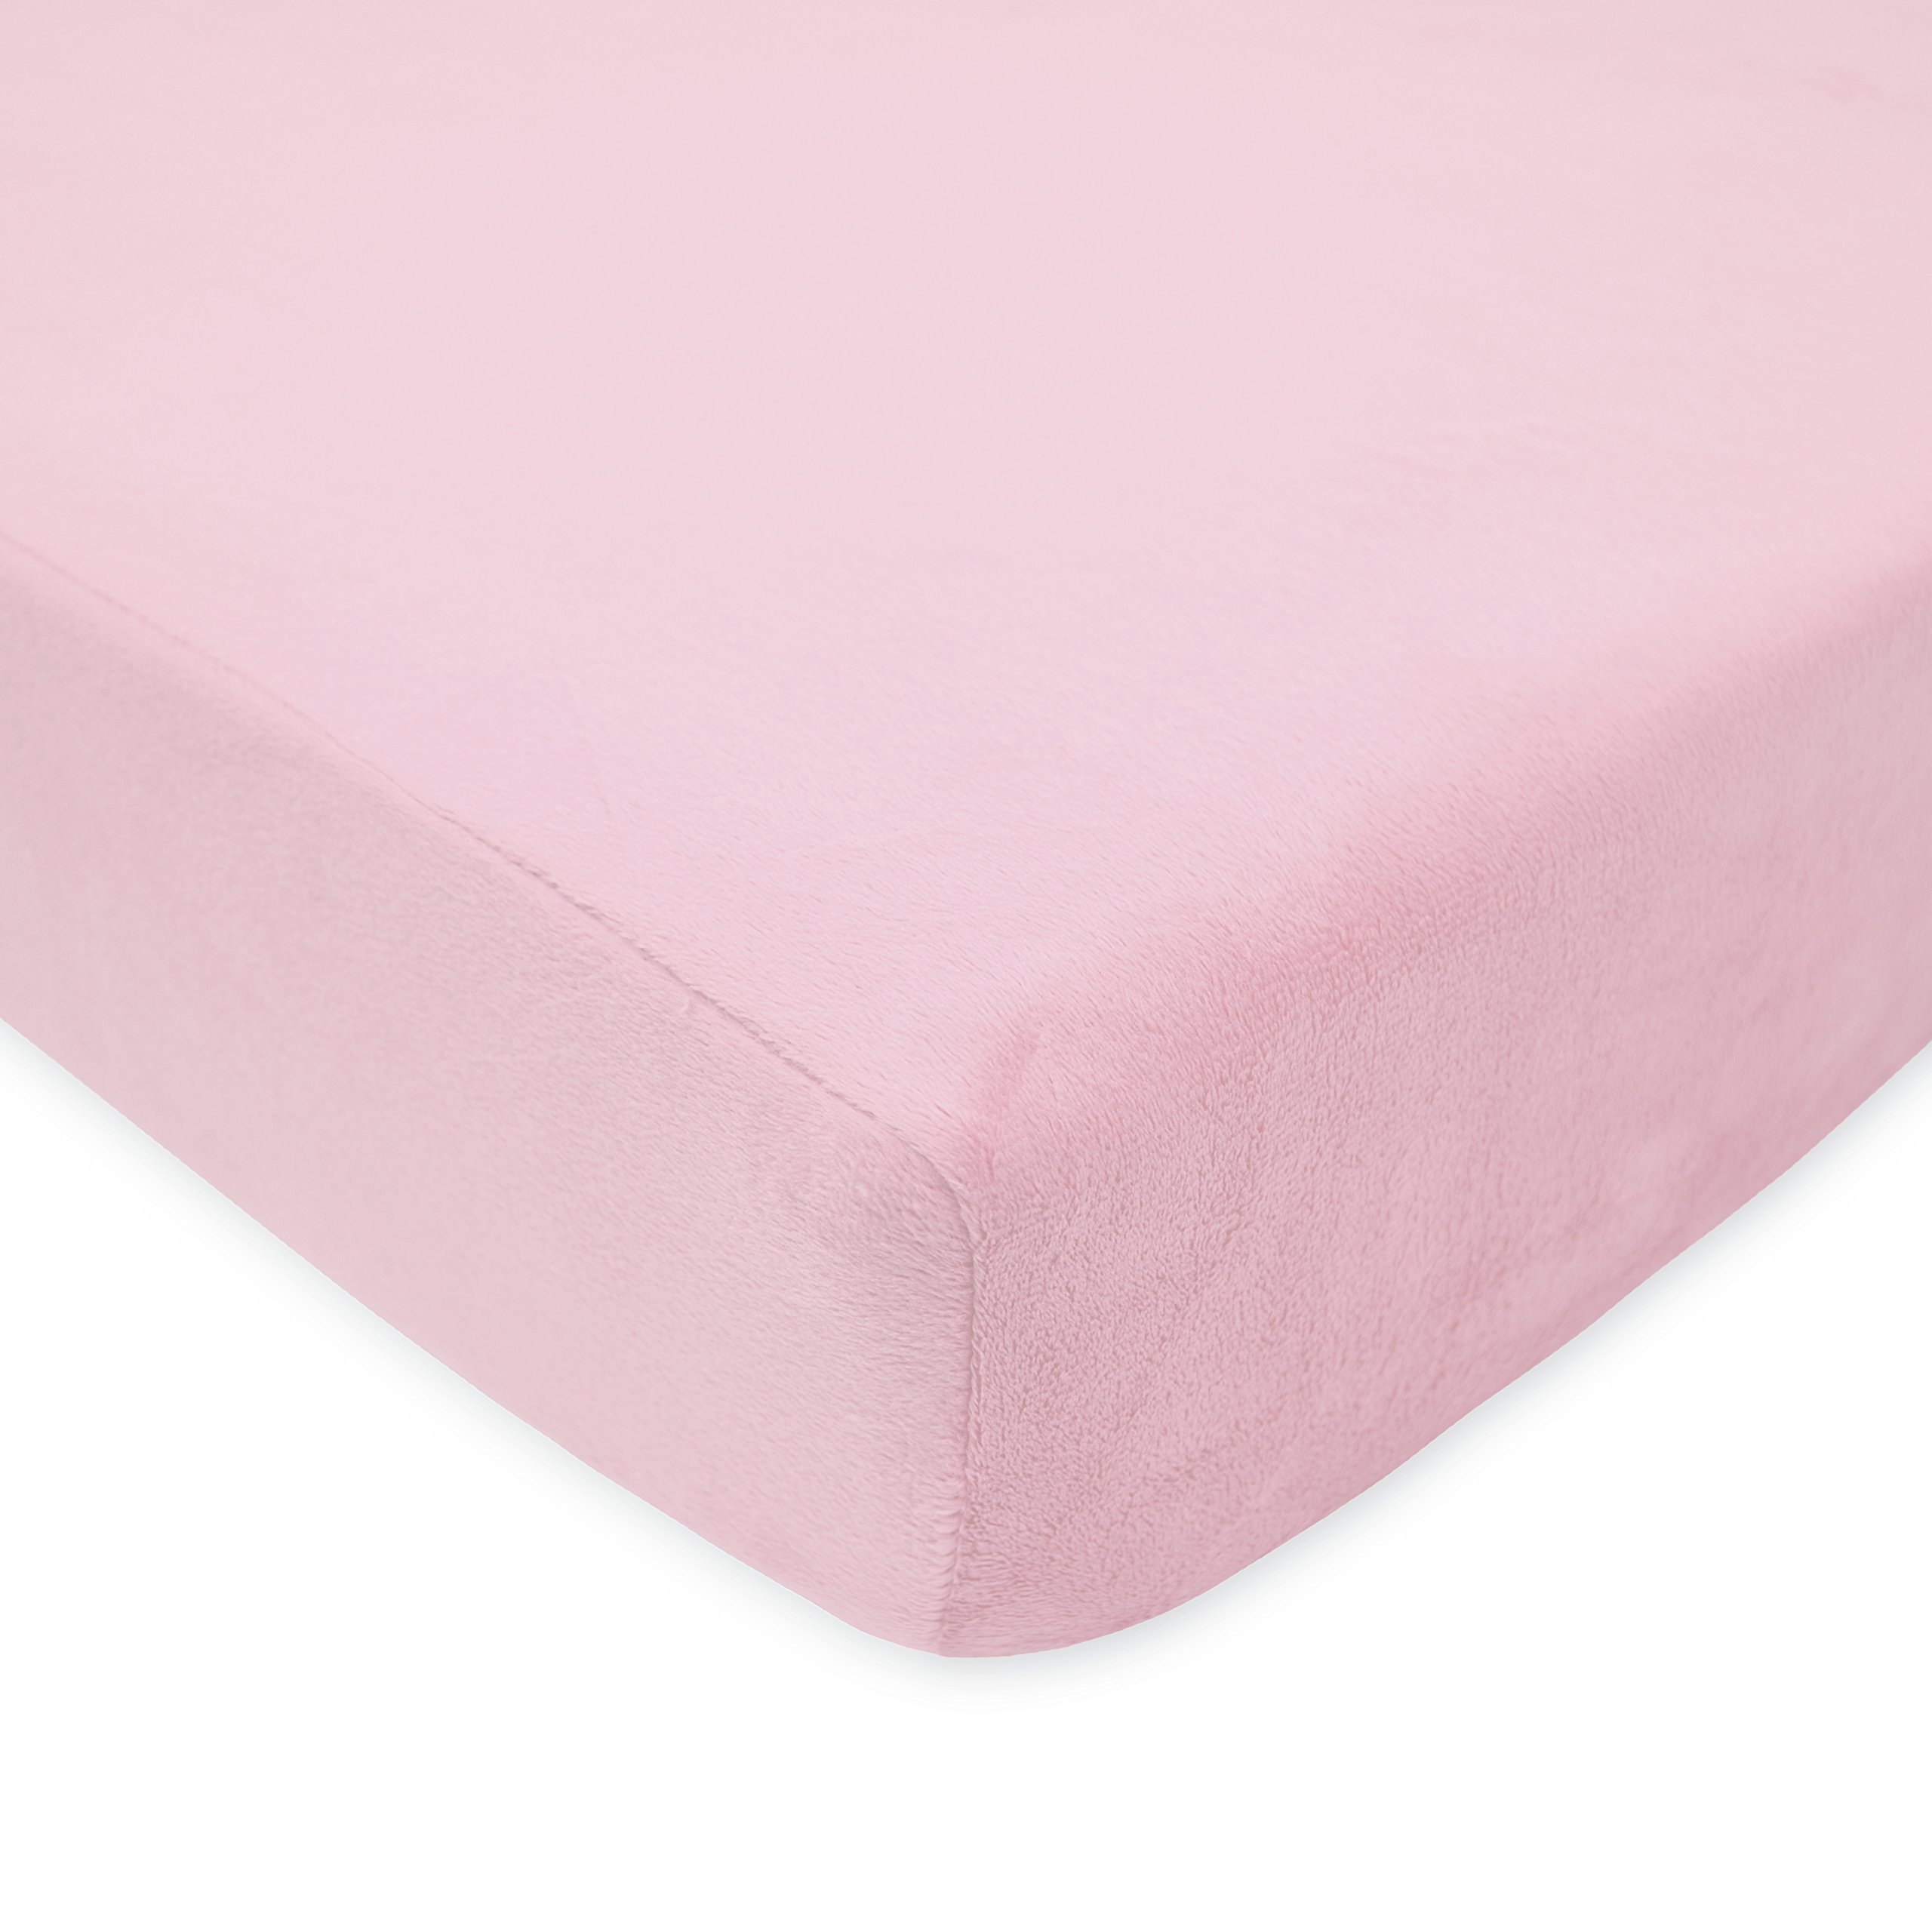 American Baby Company Heavenly Soft Chenille Fitted Crib Sheet for Standard Crib and Toddler Mattresses, Pink